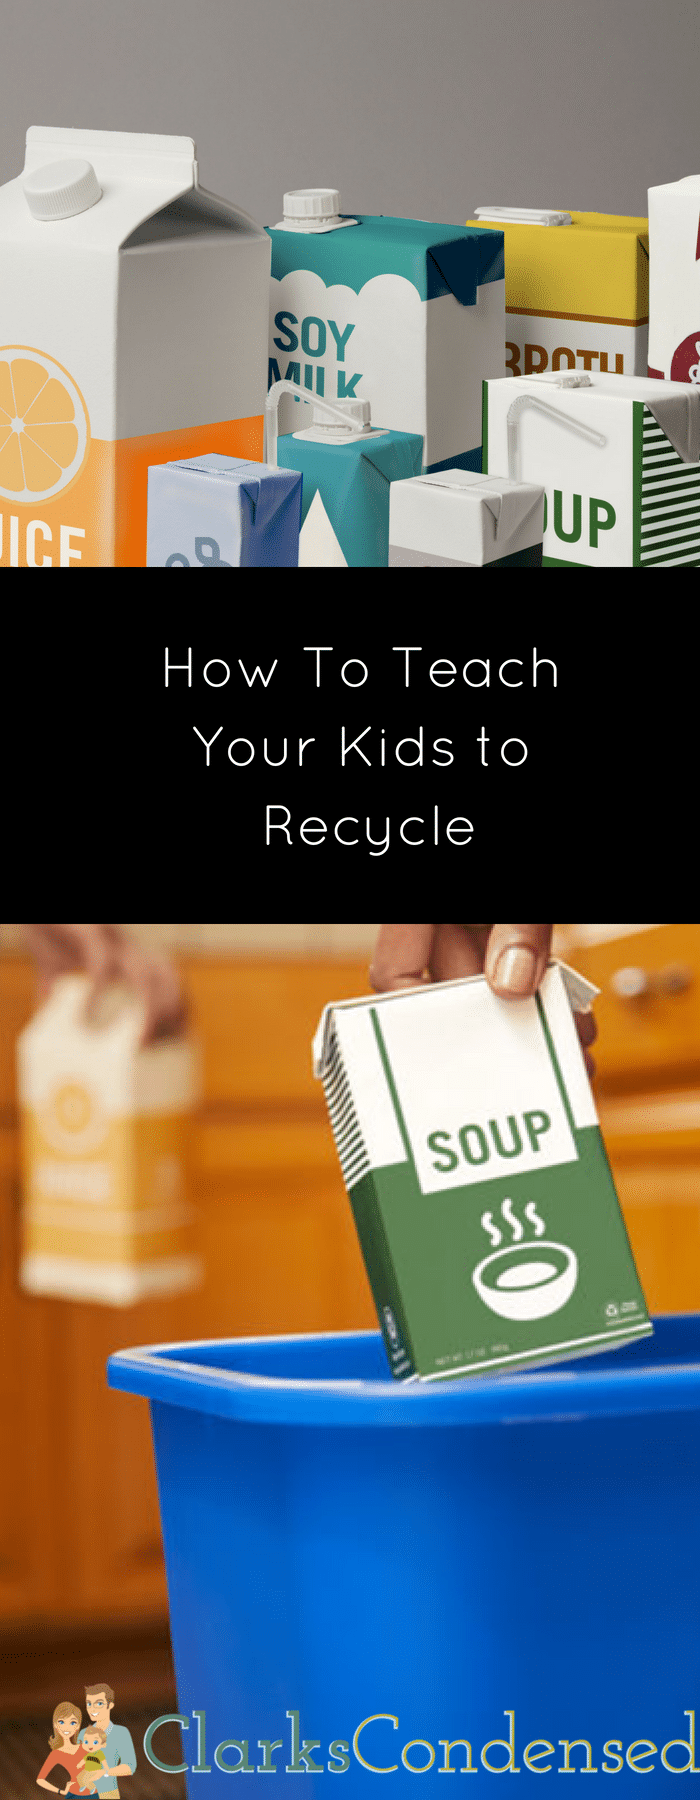 Recycling is so important! Learn more about the Carton Council  #RecycleYourCartons, #IC #ad via @clarkscondensed